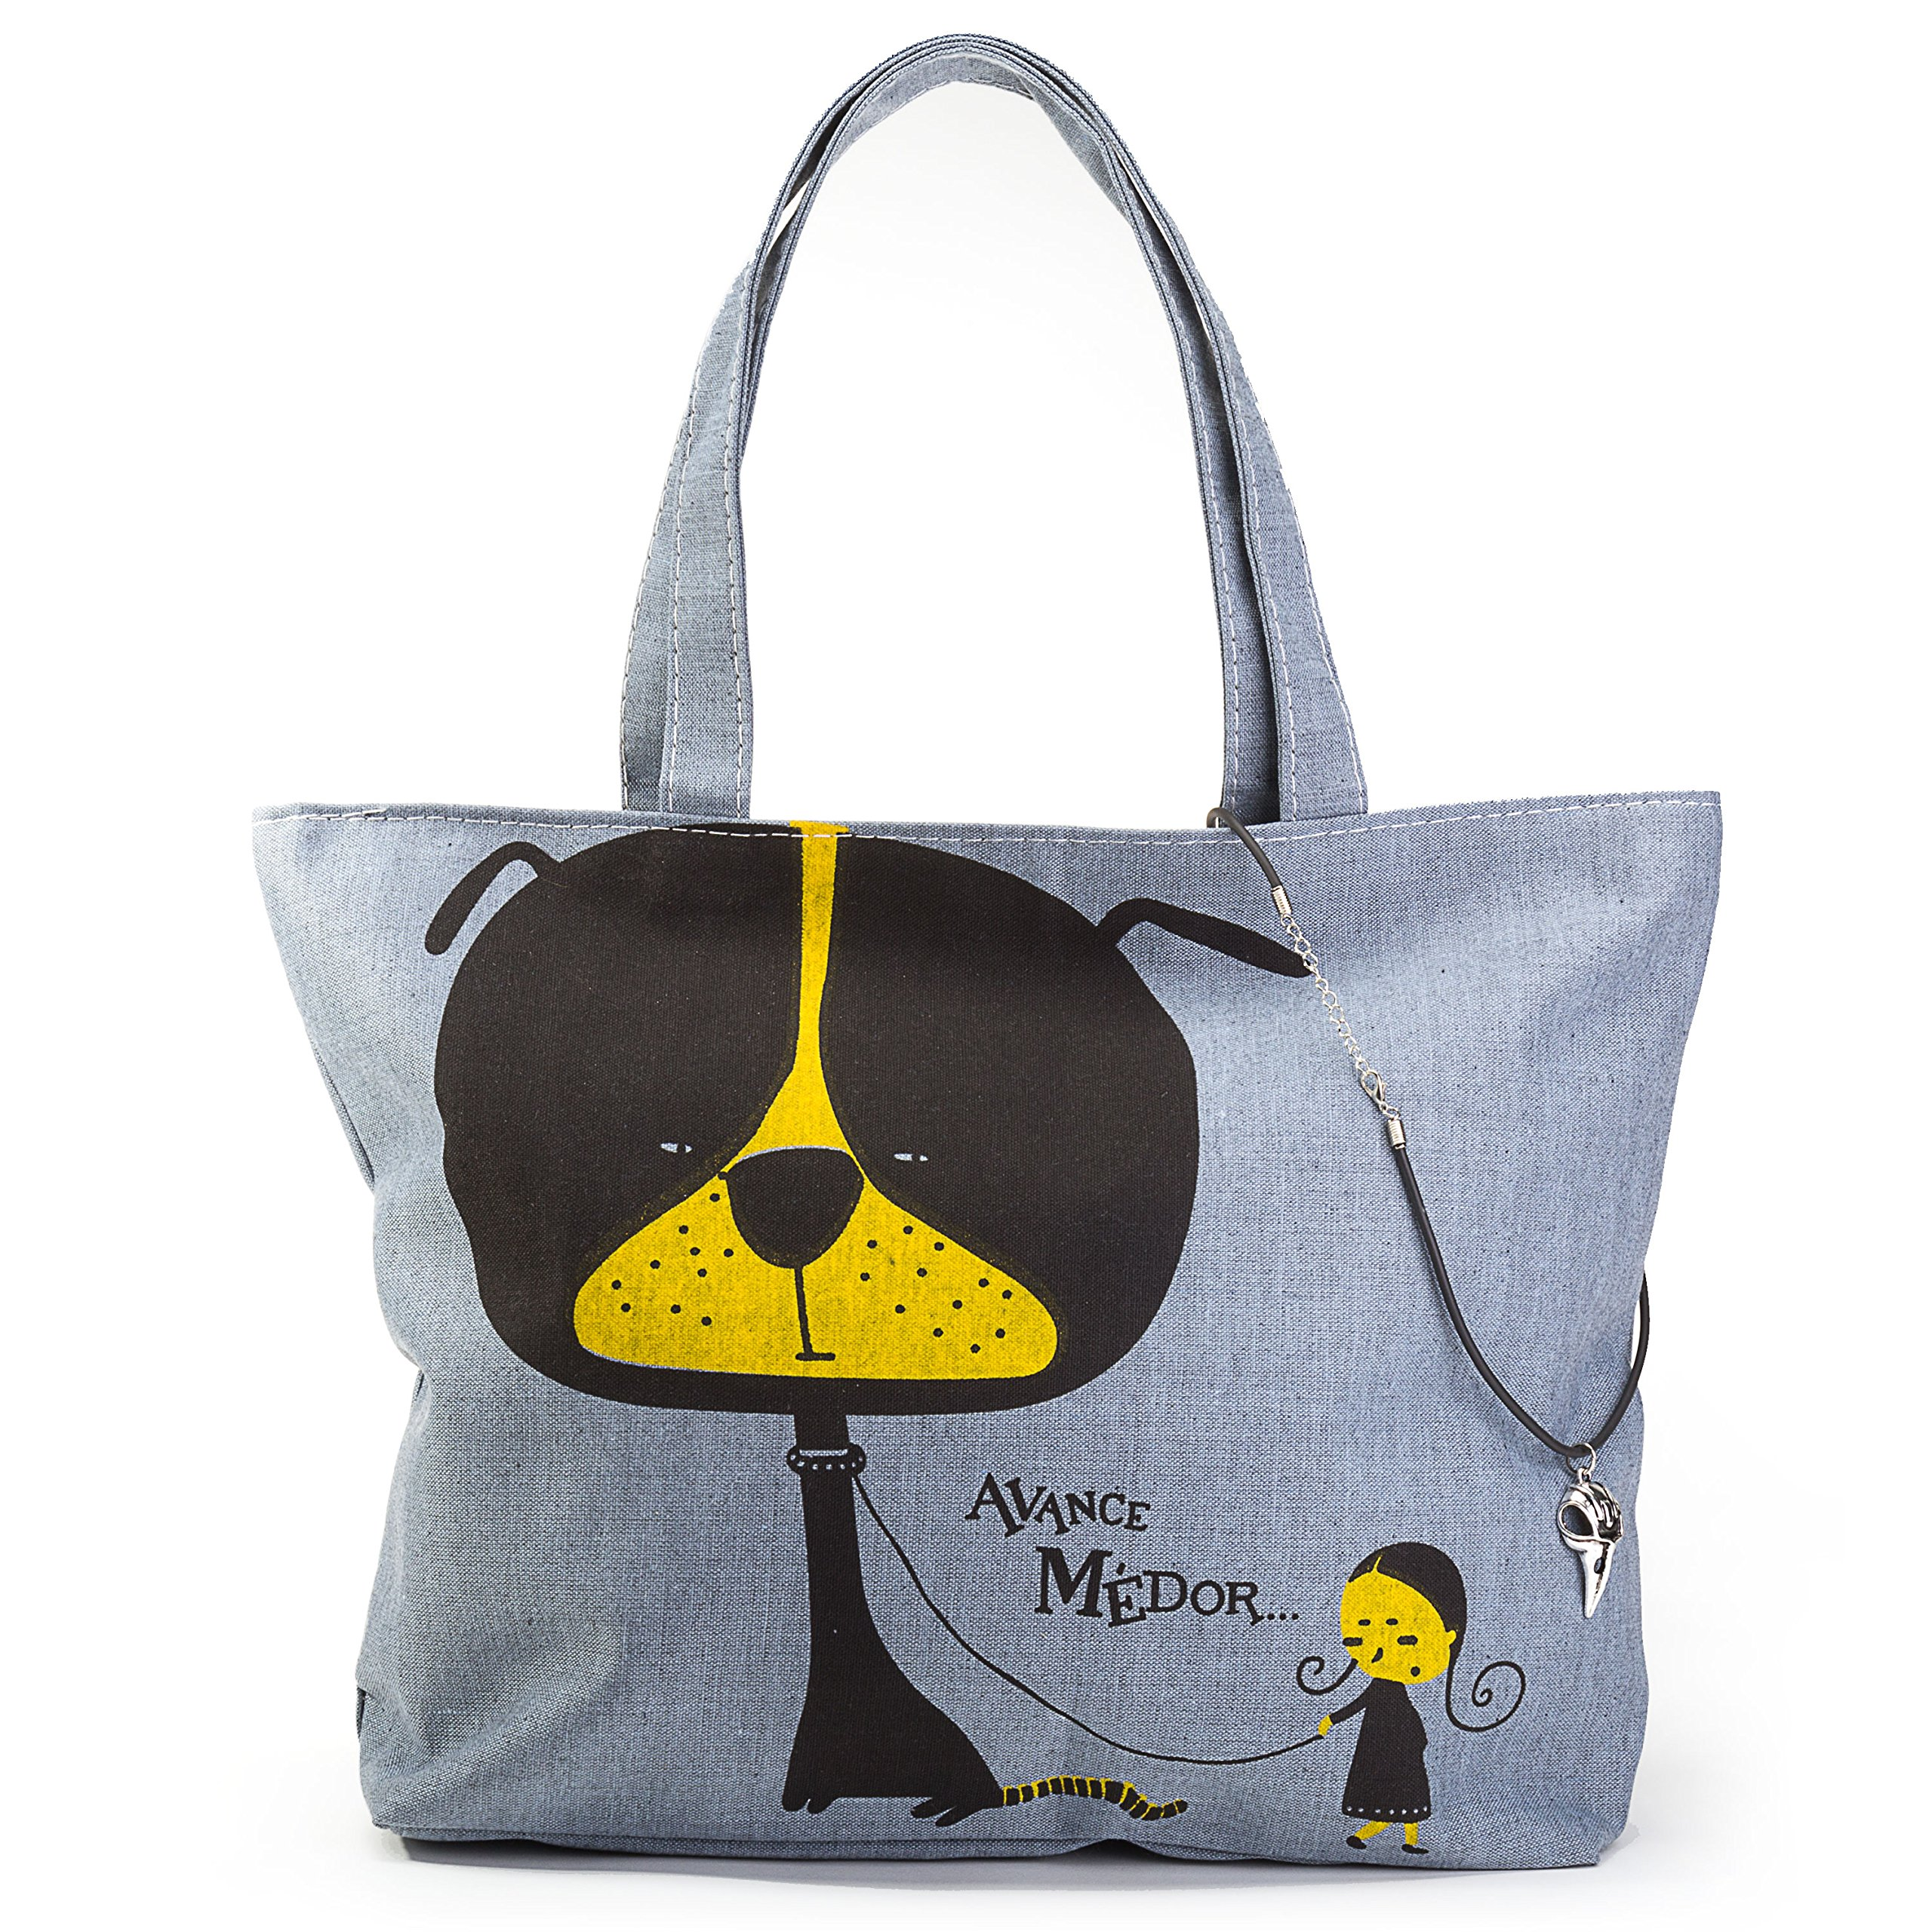 Grunge Style Tote Bag with Bird Skull Choker Necklace - Hipster Fashion Purse for Street Rebels